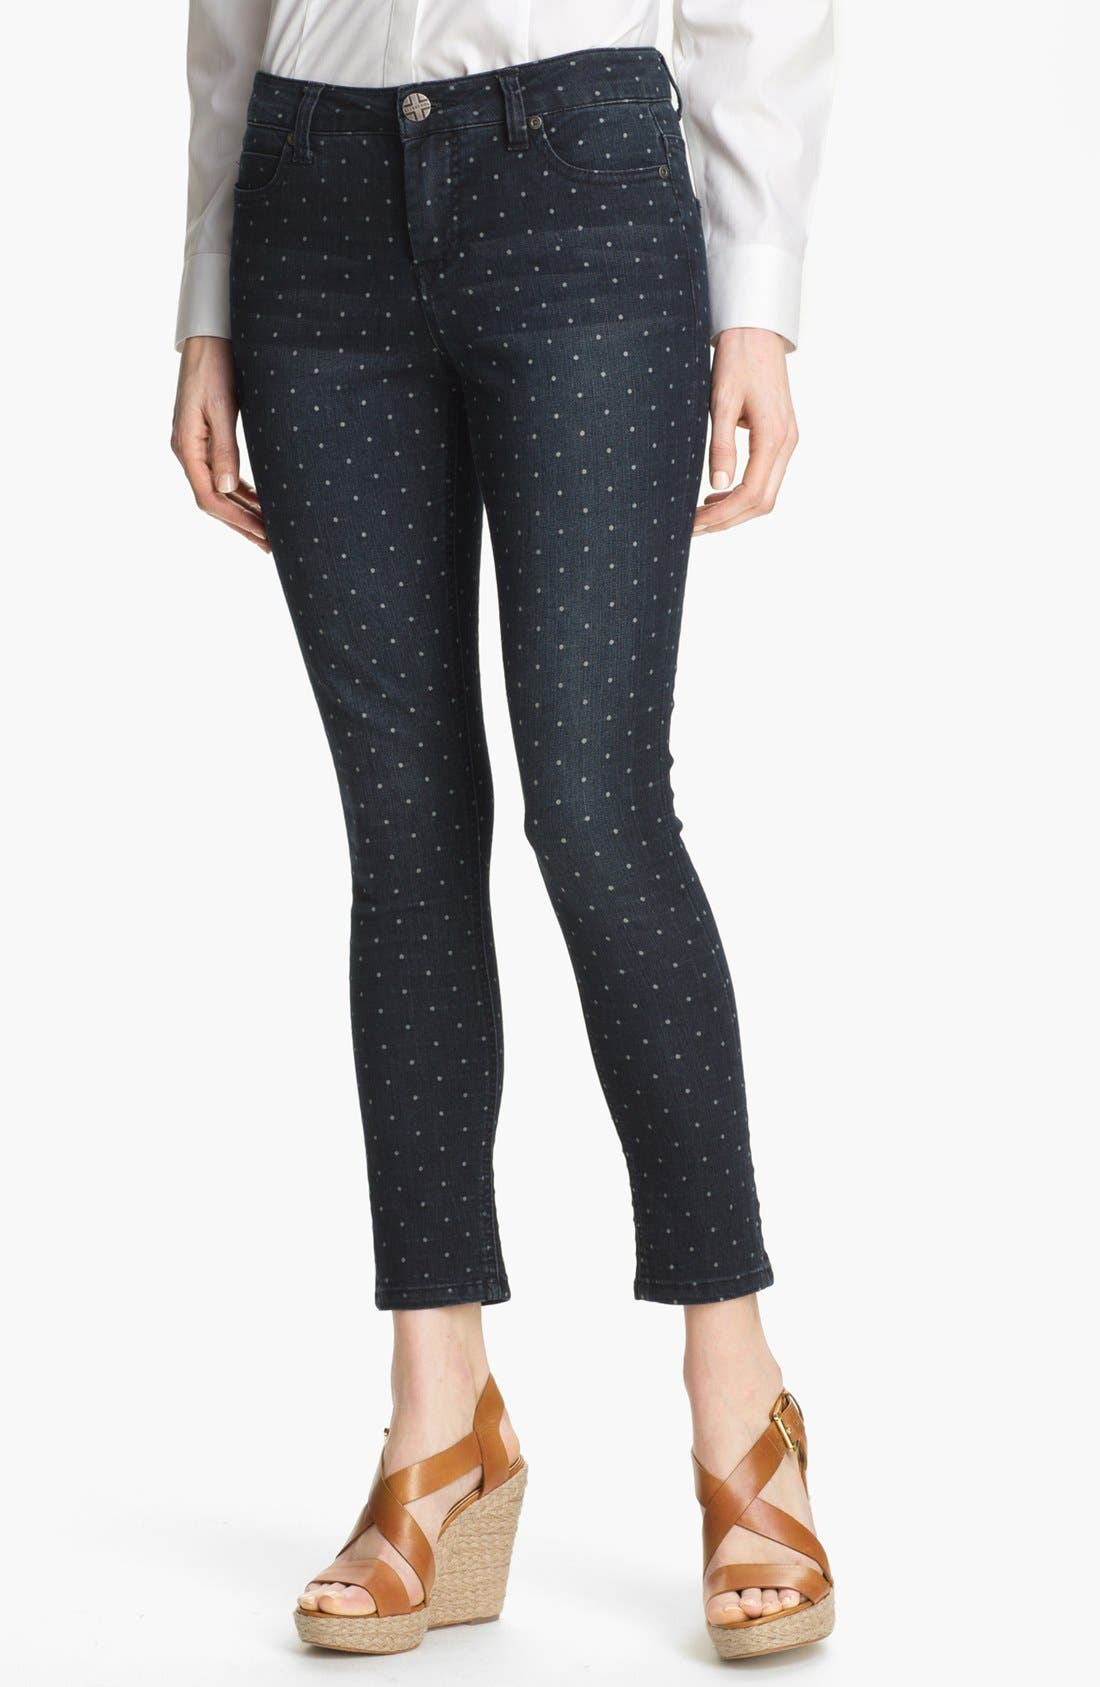 Main Image - Liverpool Jeans Company 'Abby' Print Skinny Ankle Jeans